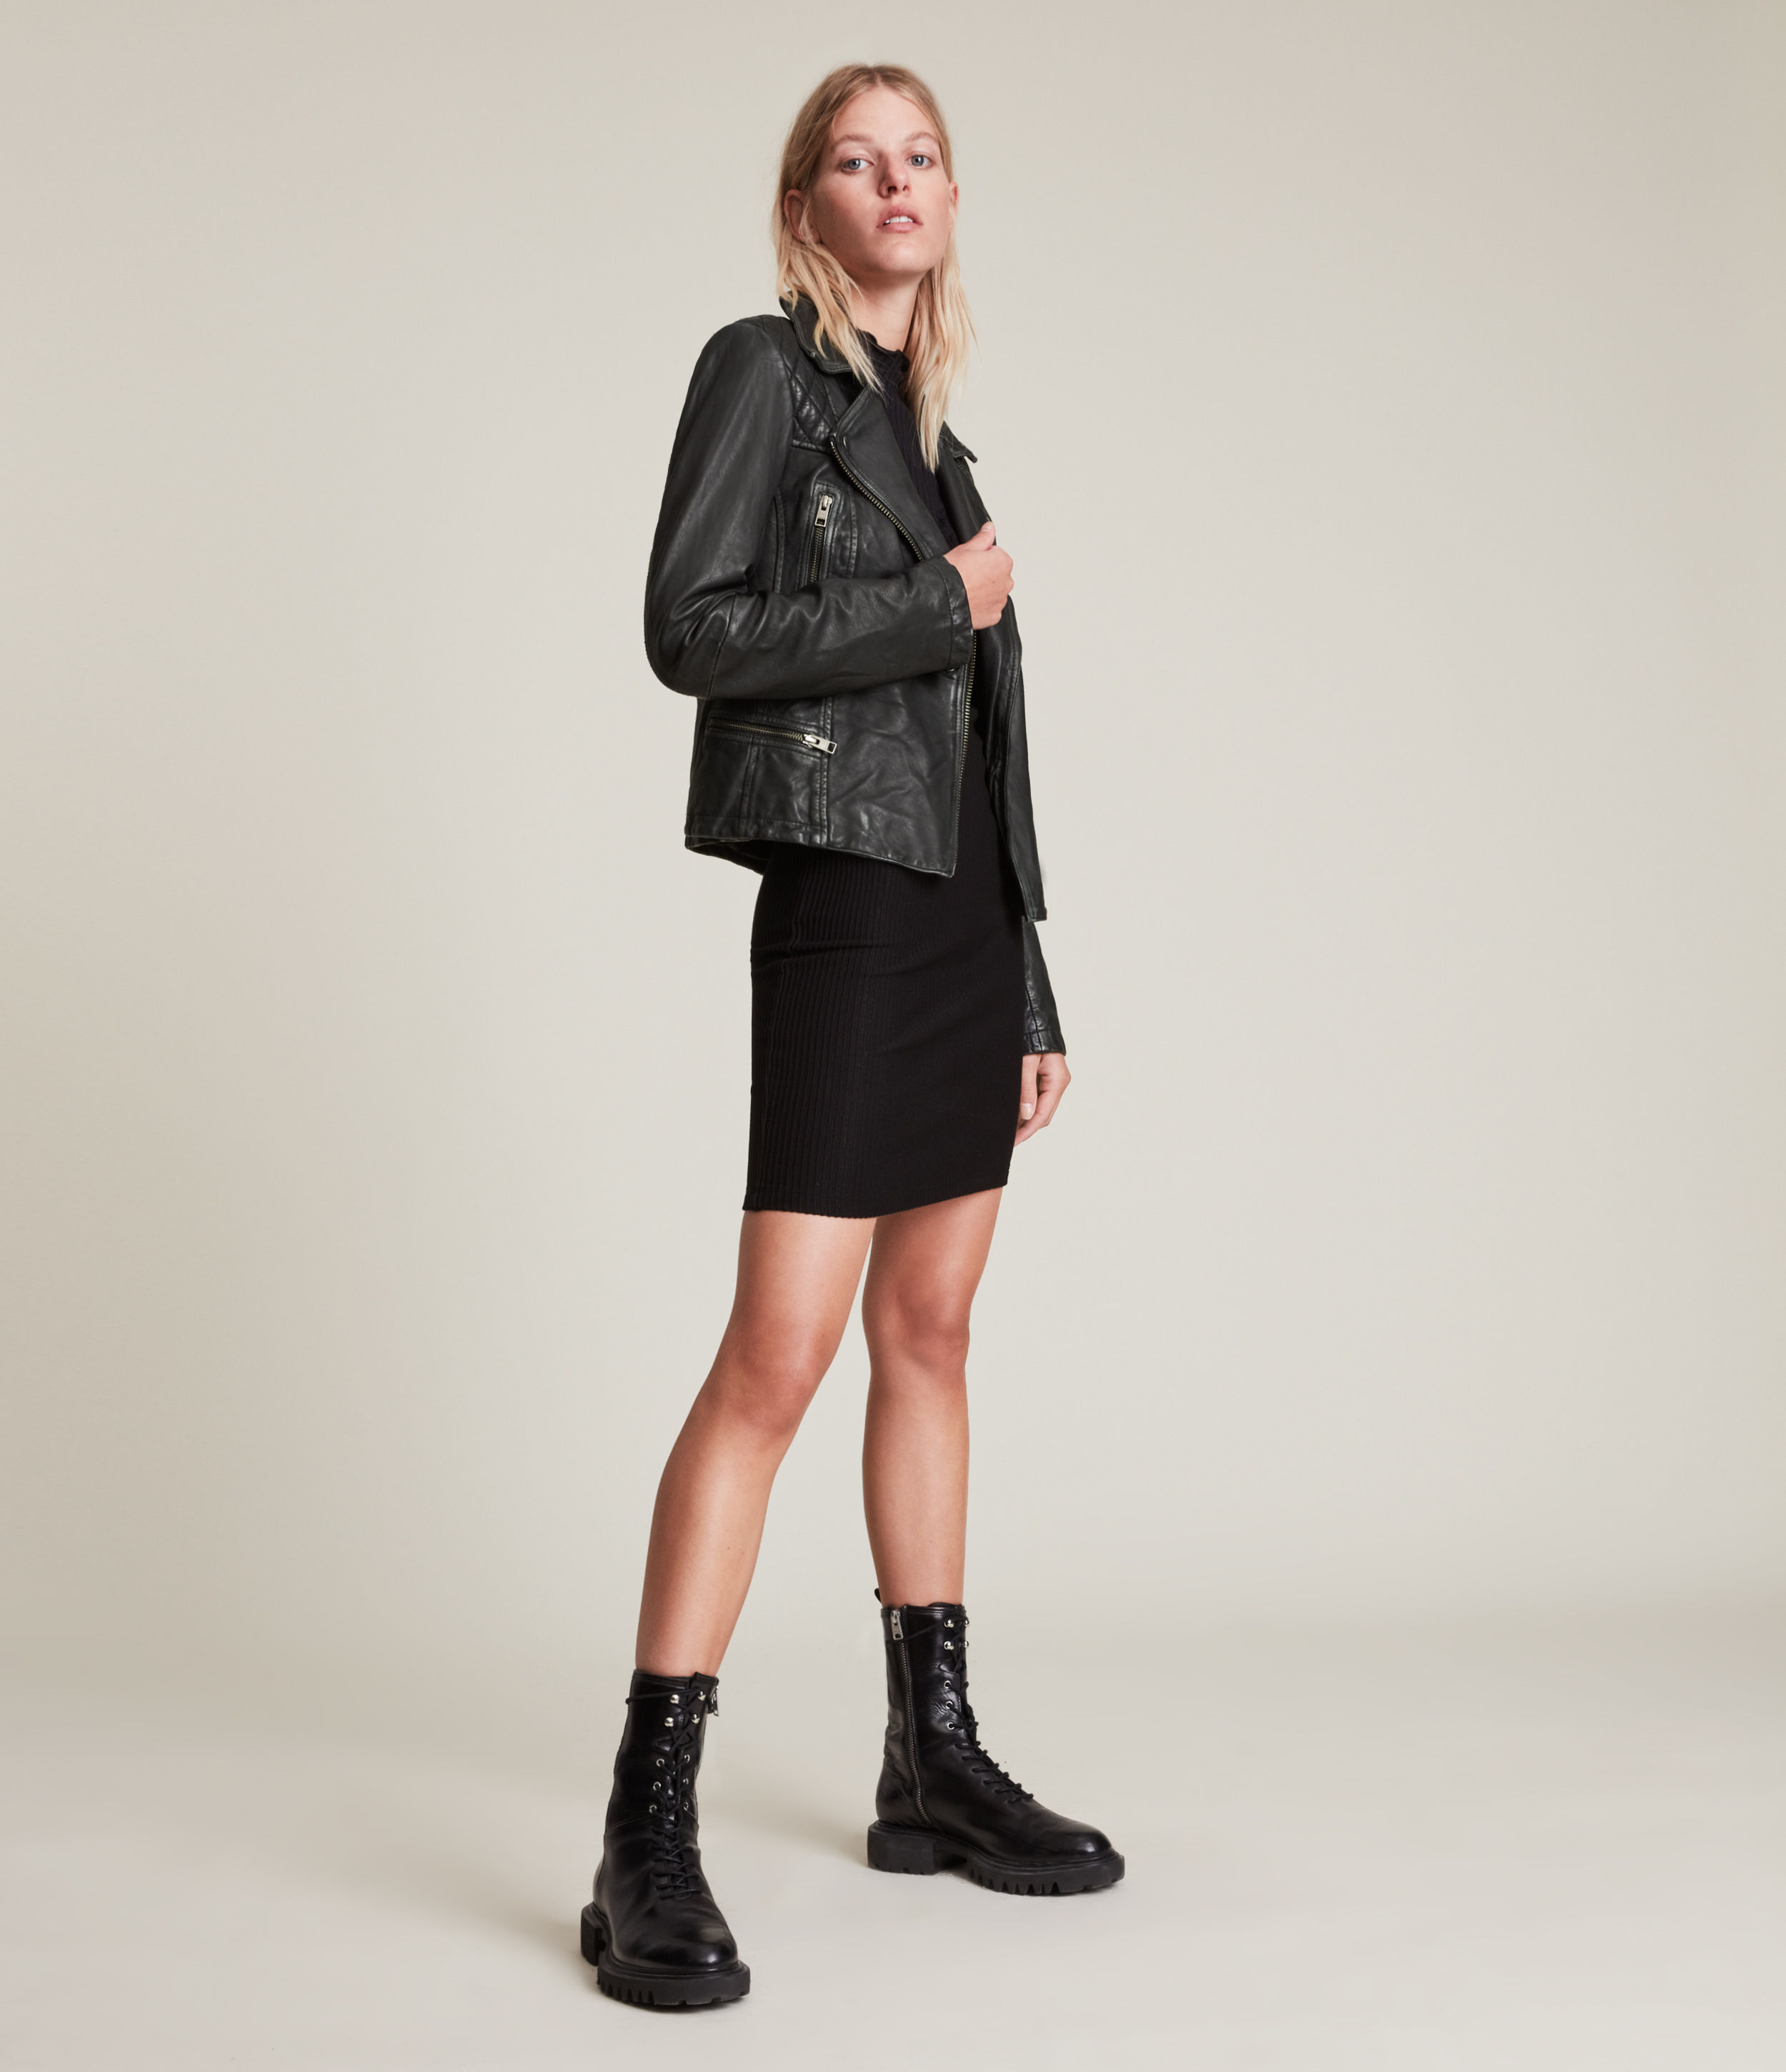 AllSaints Women's Leather Quilted Regular Fit Cargo Biker Jacket, Black and Grey, Size: 12